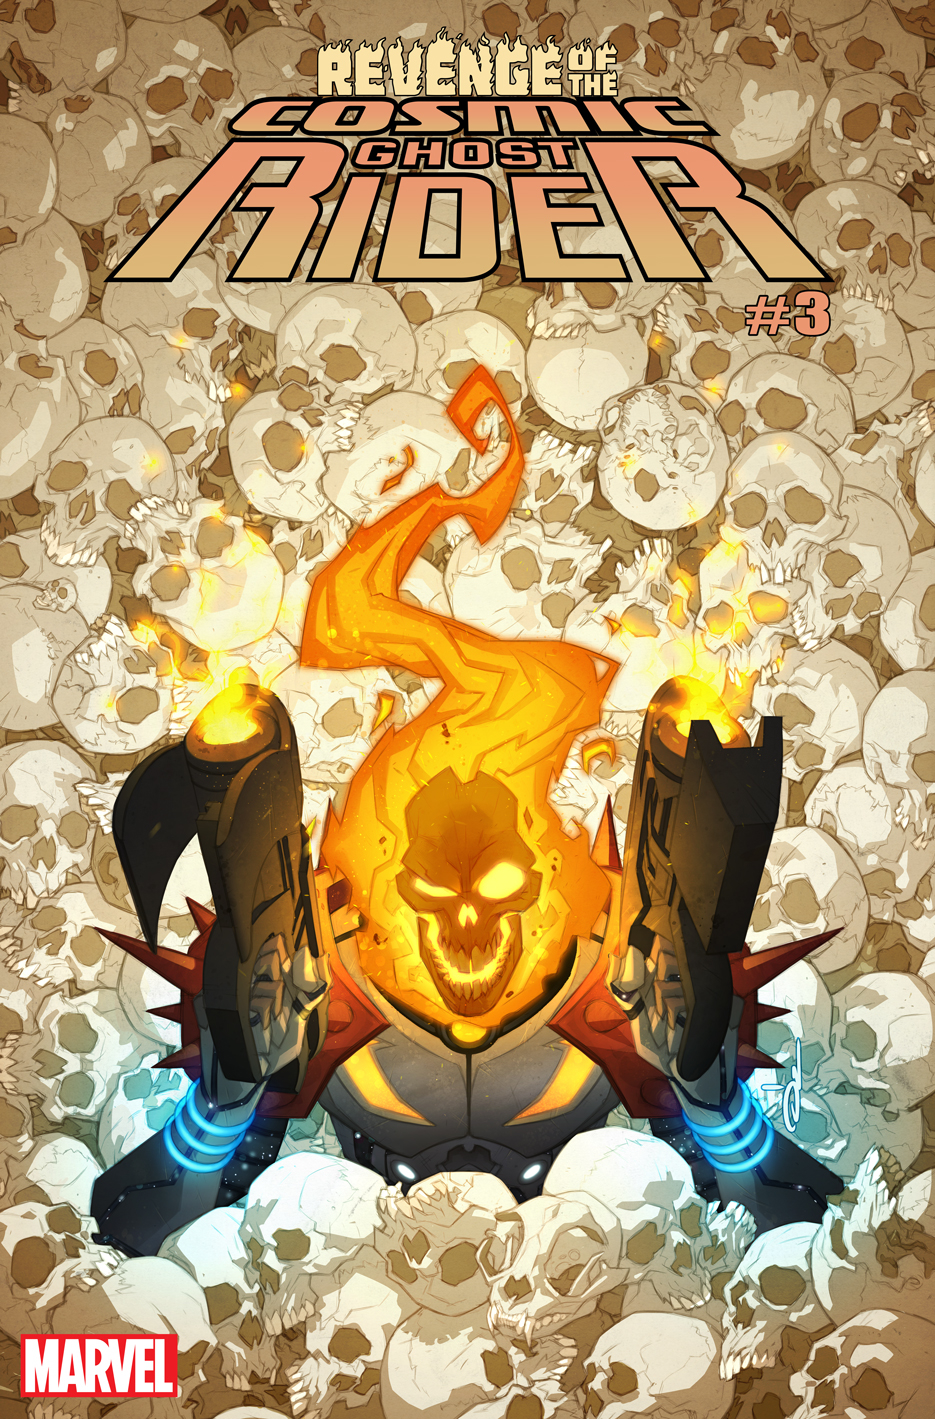 REVENGE OF COSMIC GHOST RIDER #3 (OF 5) YILDRUM VAR